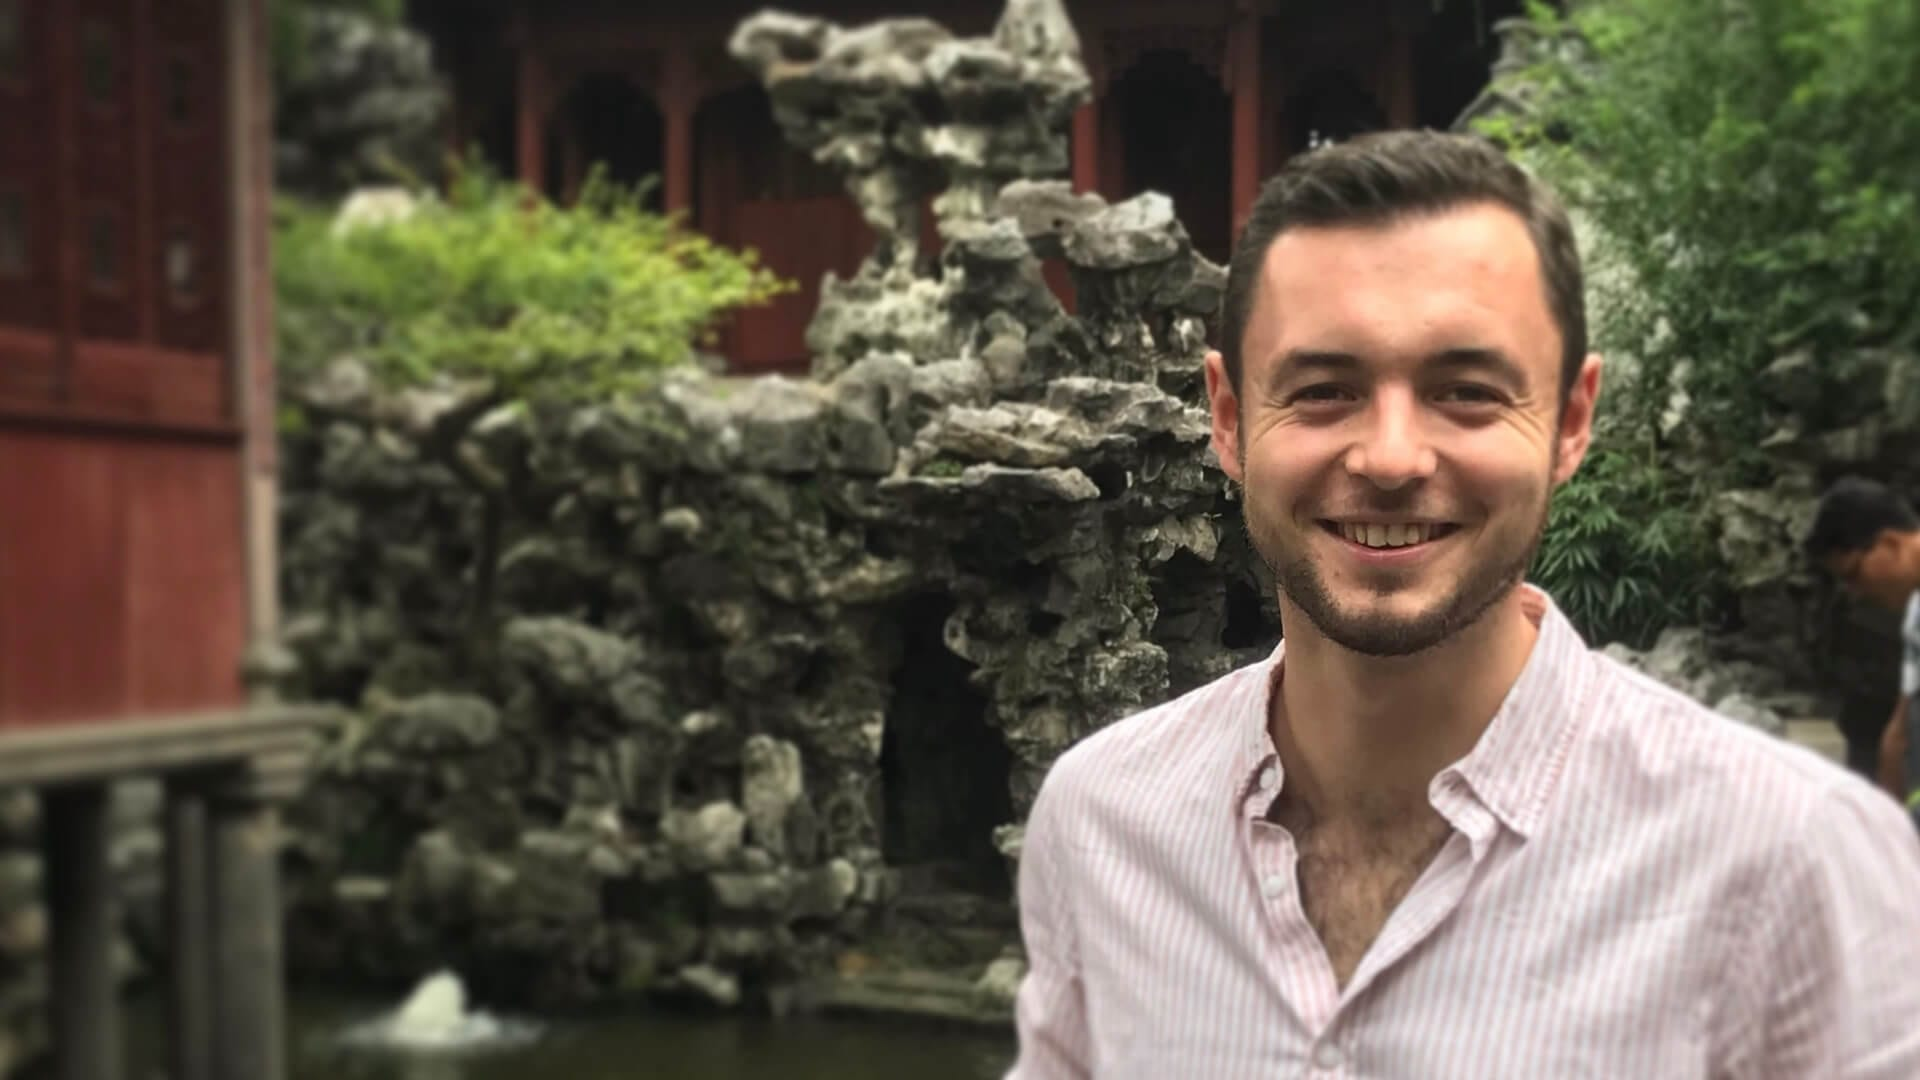 A young man is smiling and standing in front of a Chinese building in Shanghai.